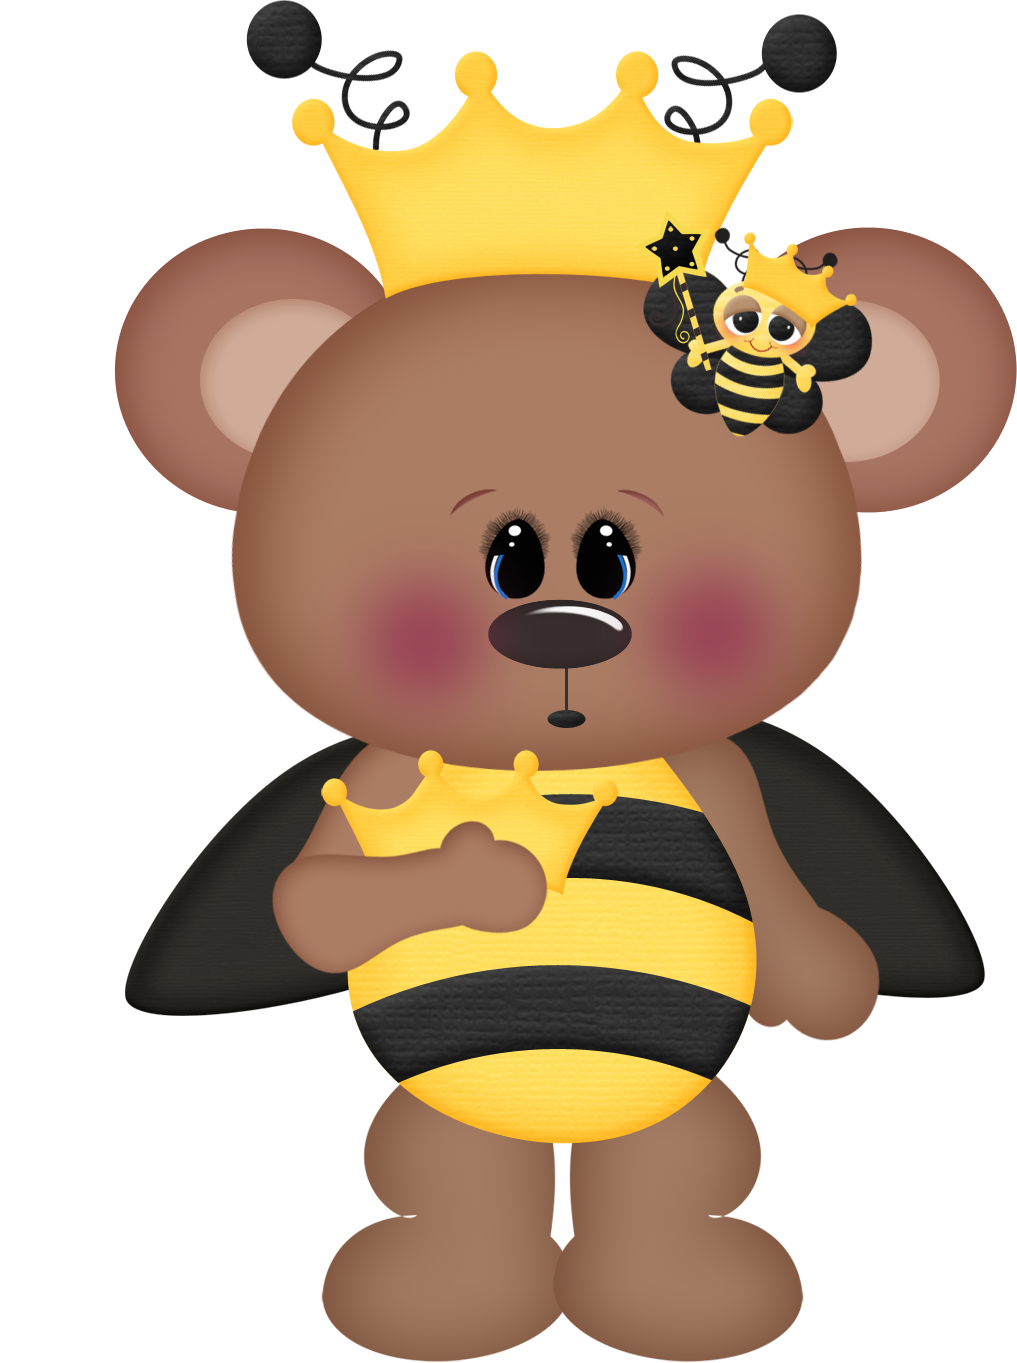 Bee clipart bear. Pin by unloveable tum